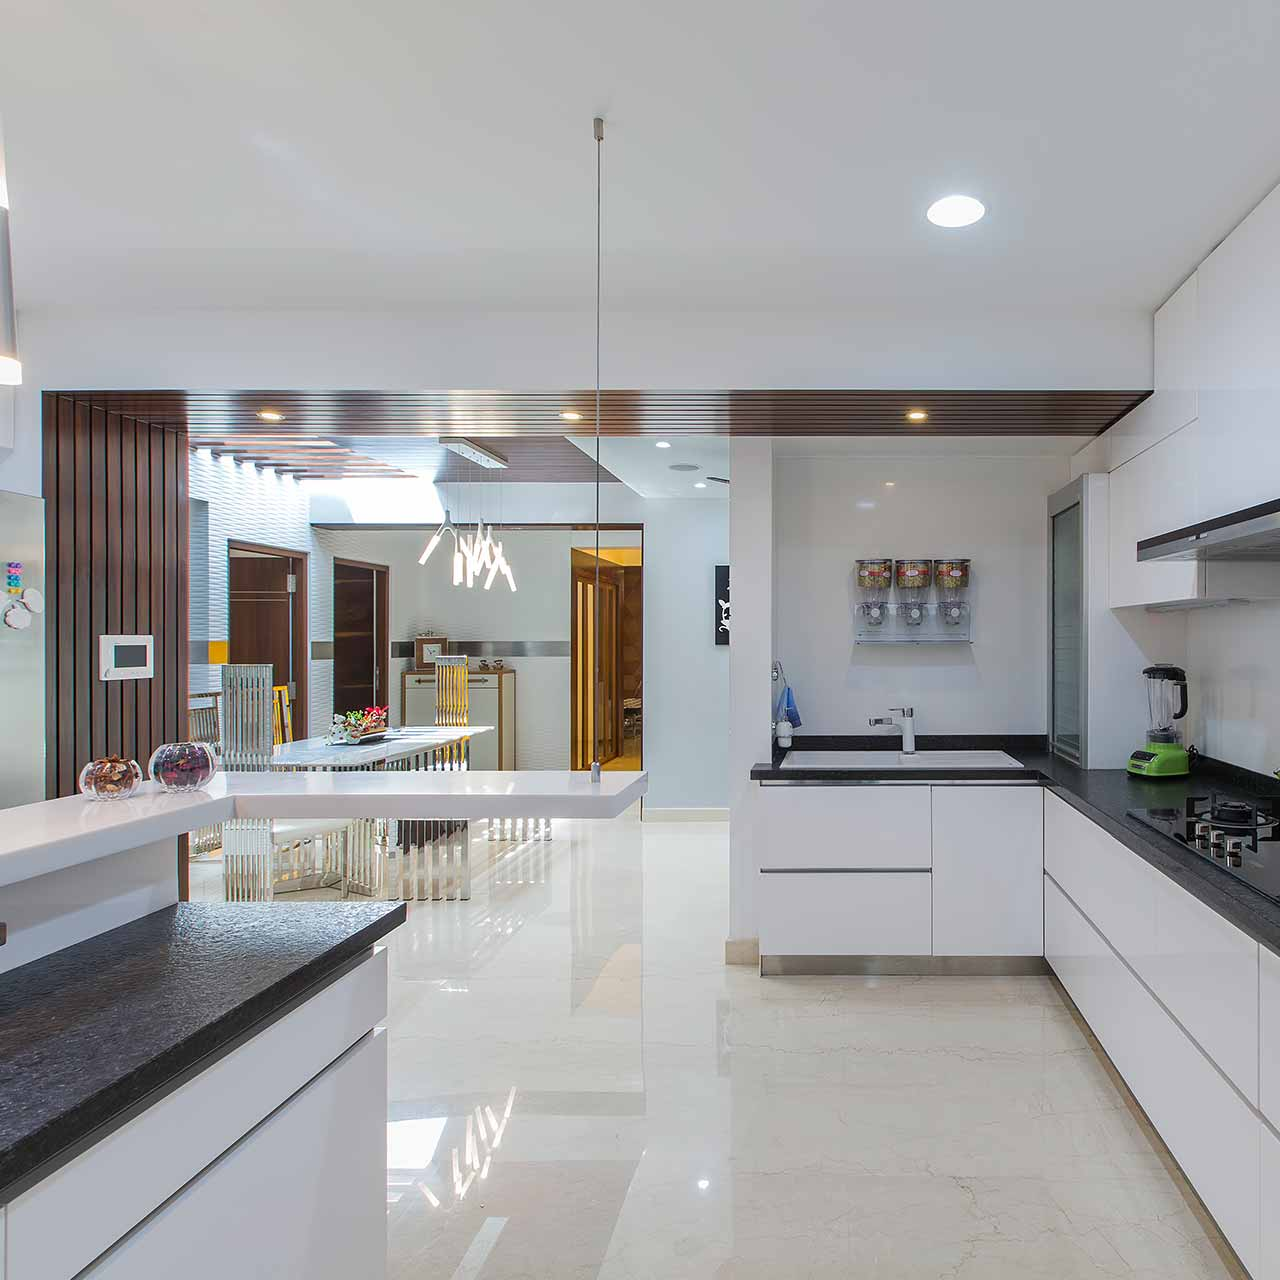 design own kitchen layout according to your own needs with a design that matches your style in square kitchen layout